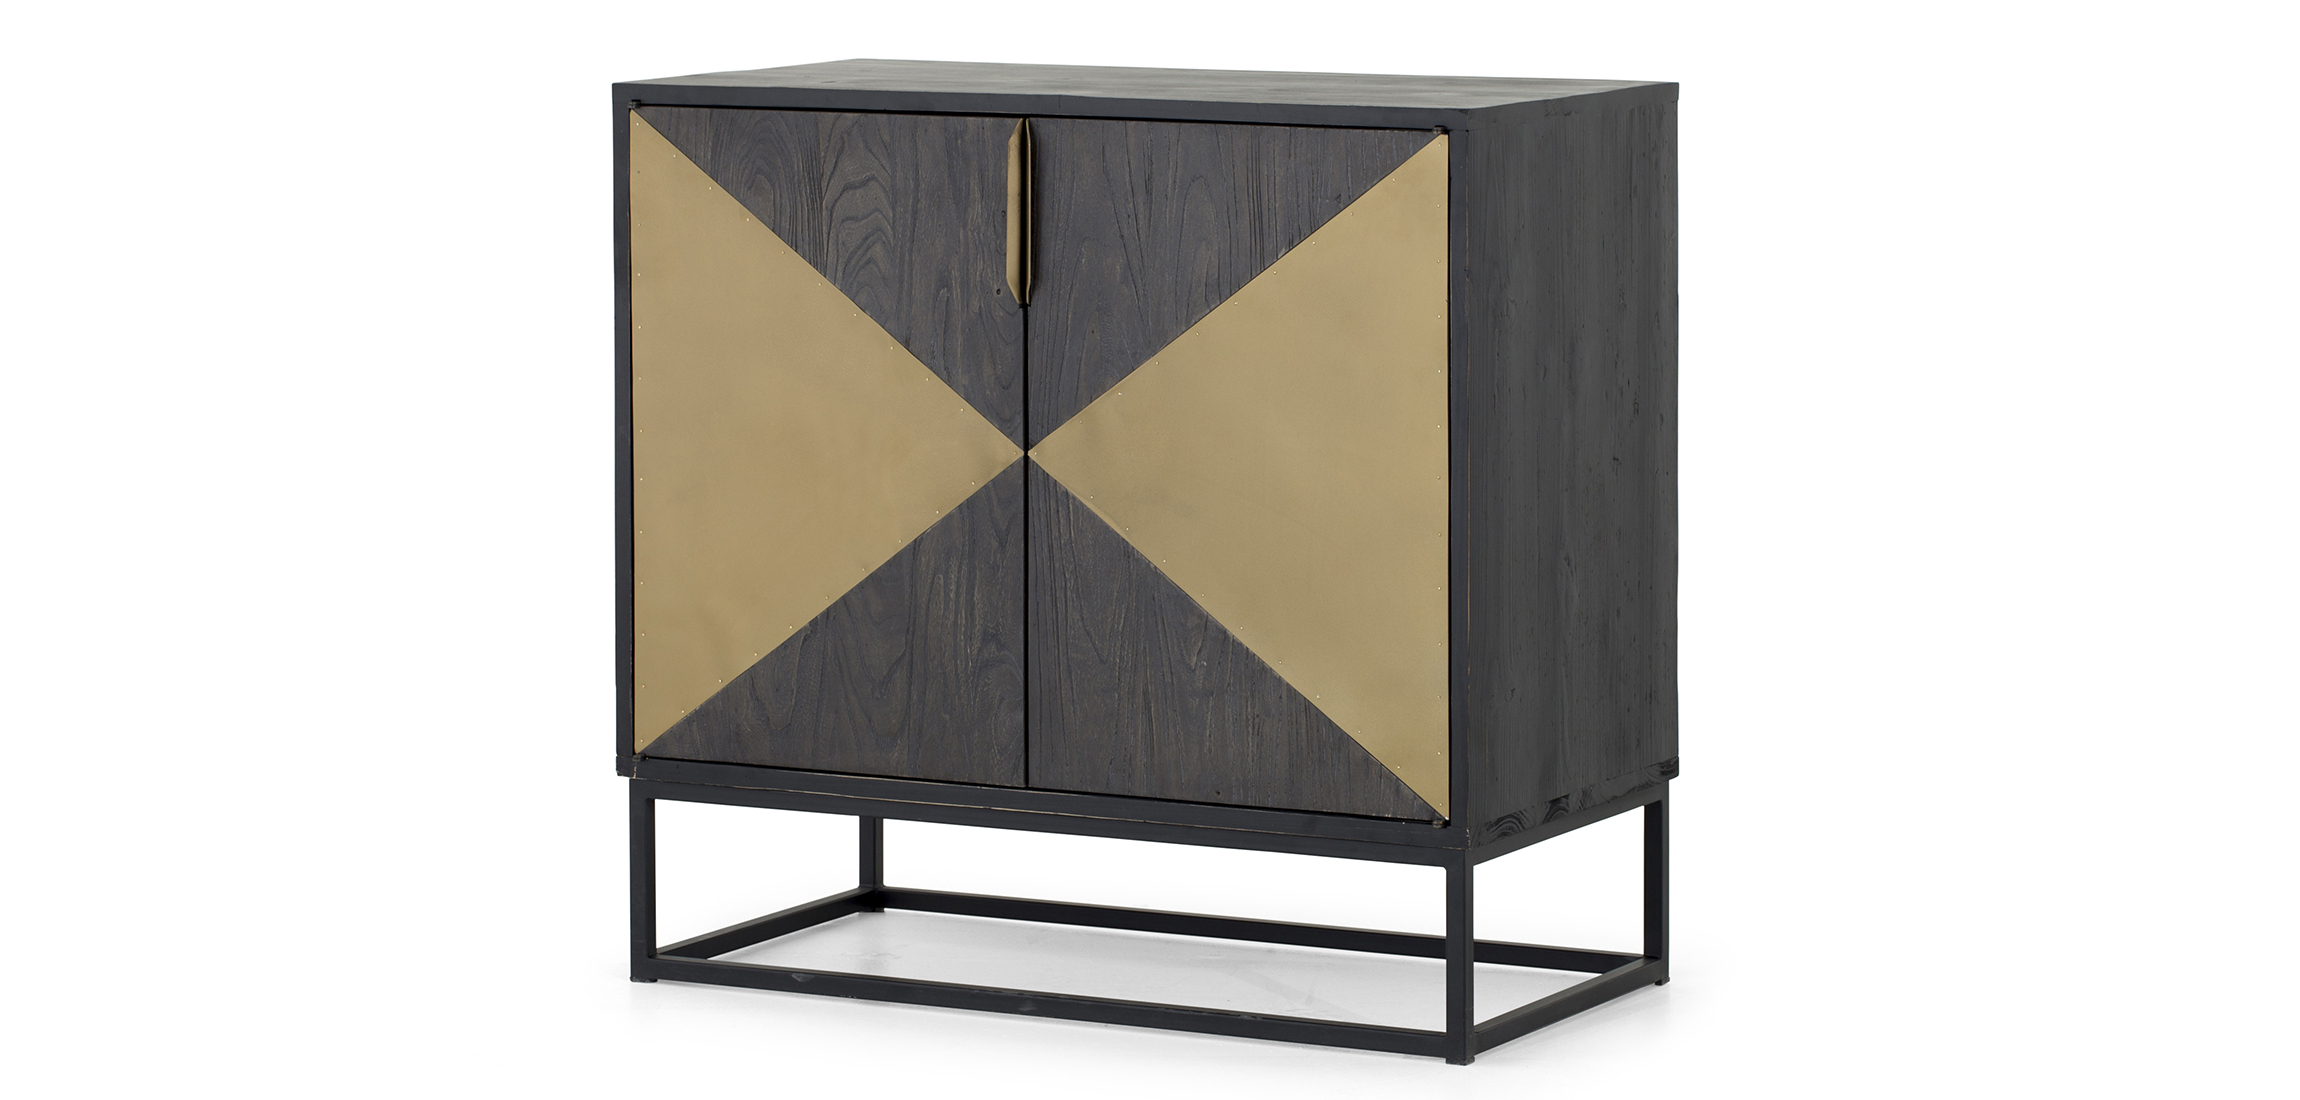 Farnell – Sideboard, 2 Doors | Flamant In Adkins Sideboards (View 17 of 20)